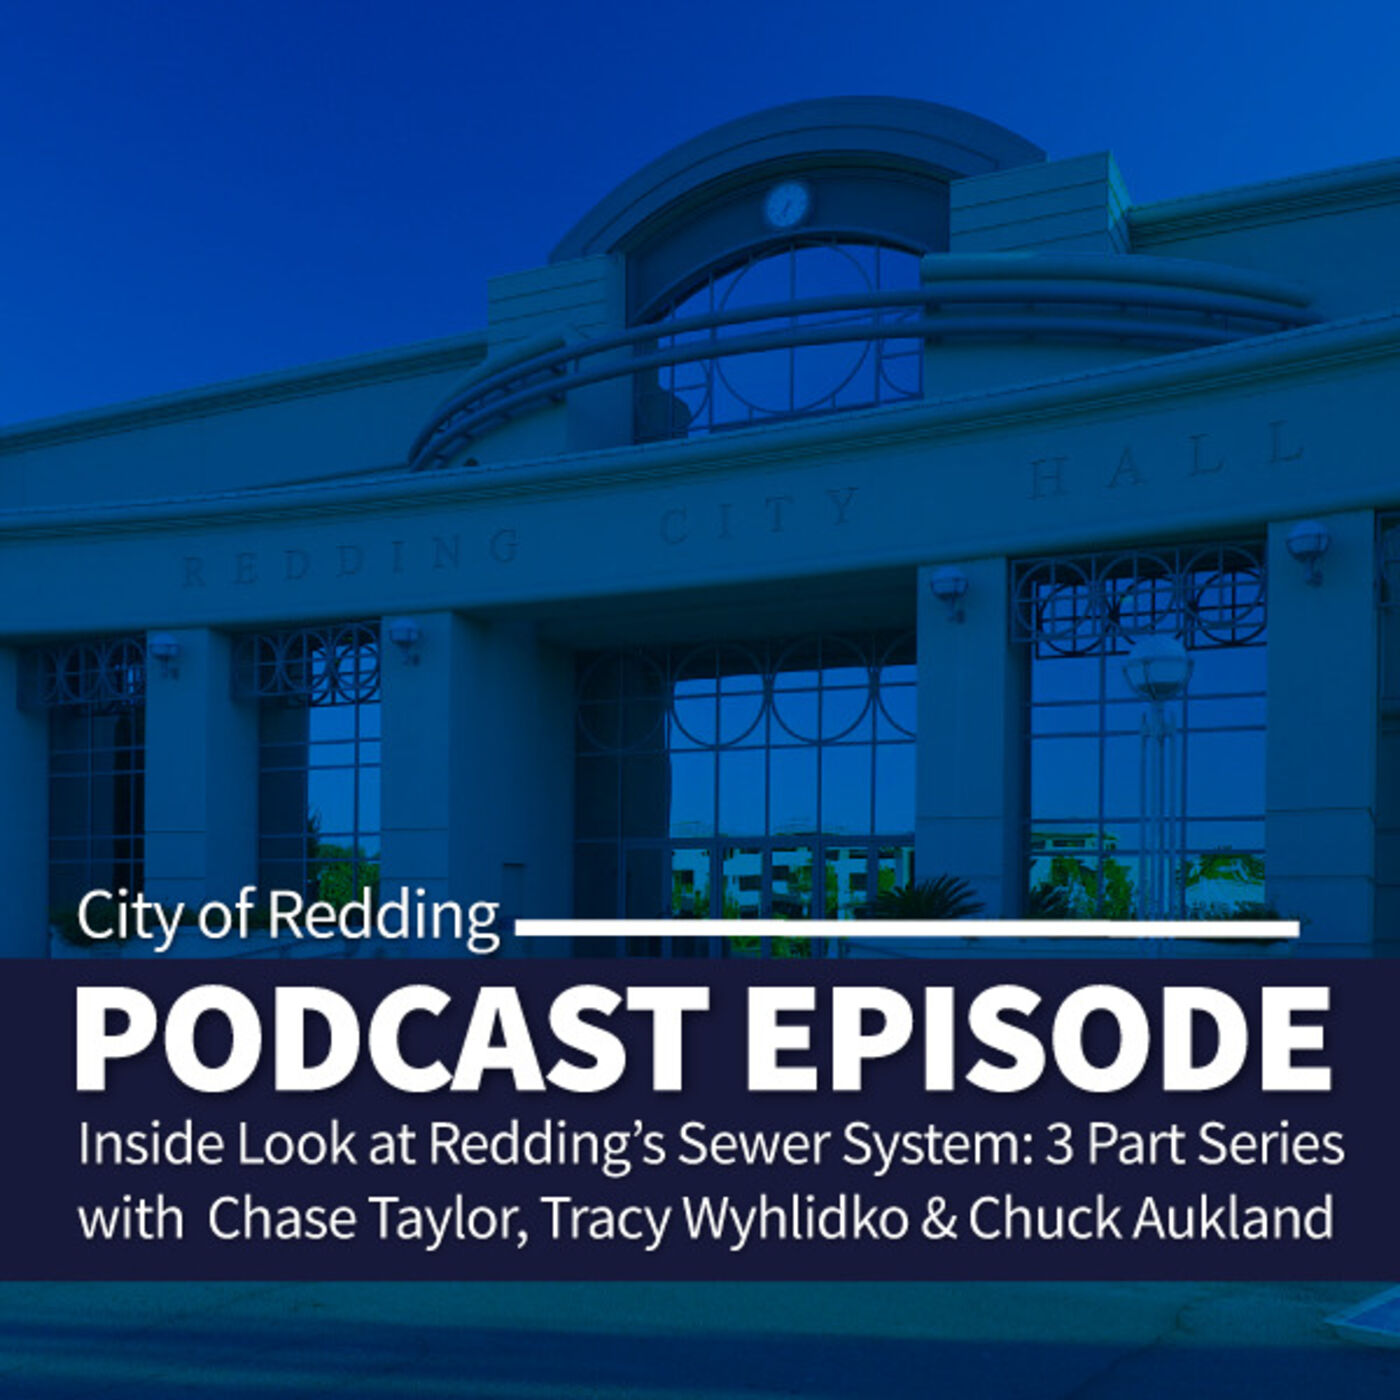 Inside Look at Redding's Sewer System, Part 3: Public Works Director Chuck Aukland